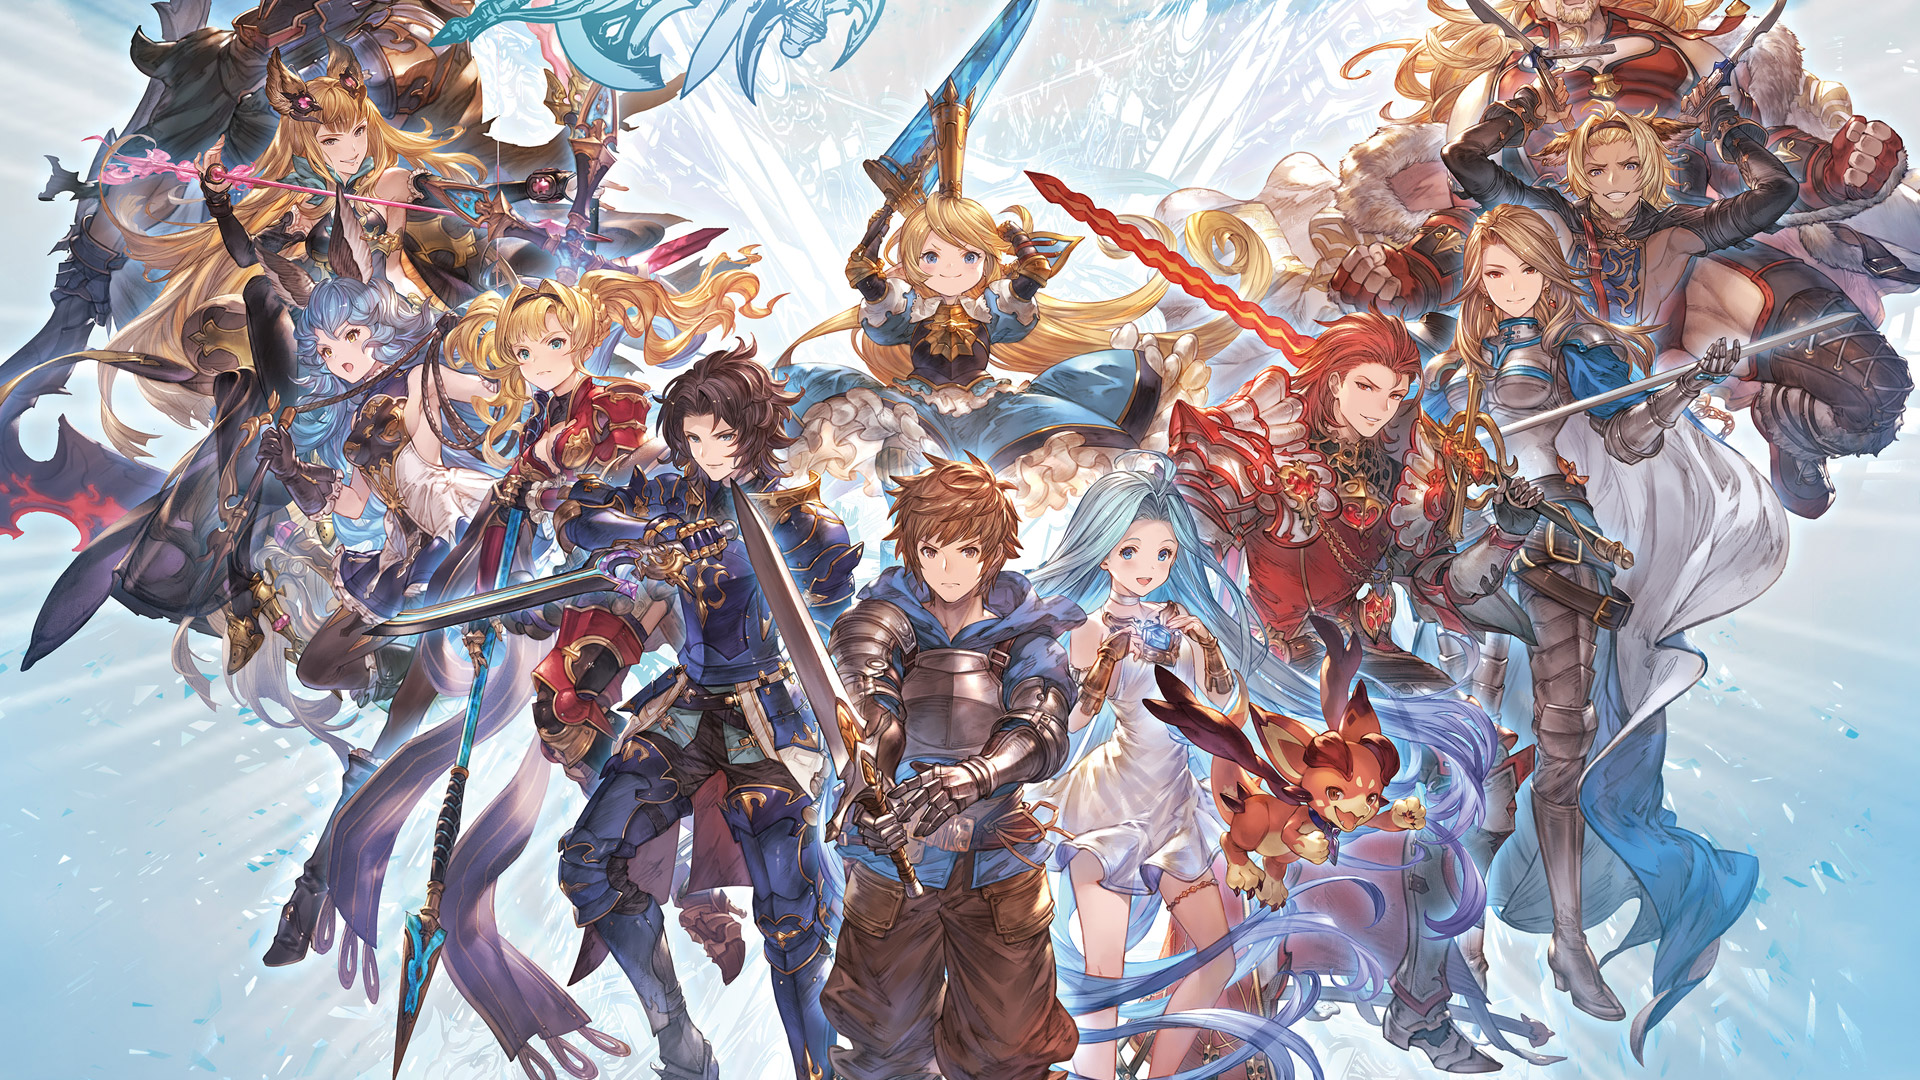 Free Granblue Fantasy Versus Wallpaper in 1920x1080